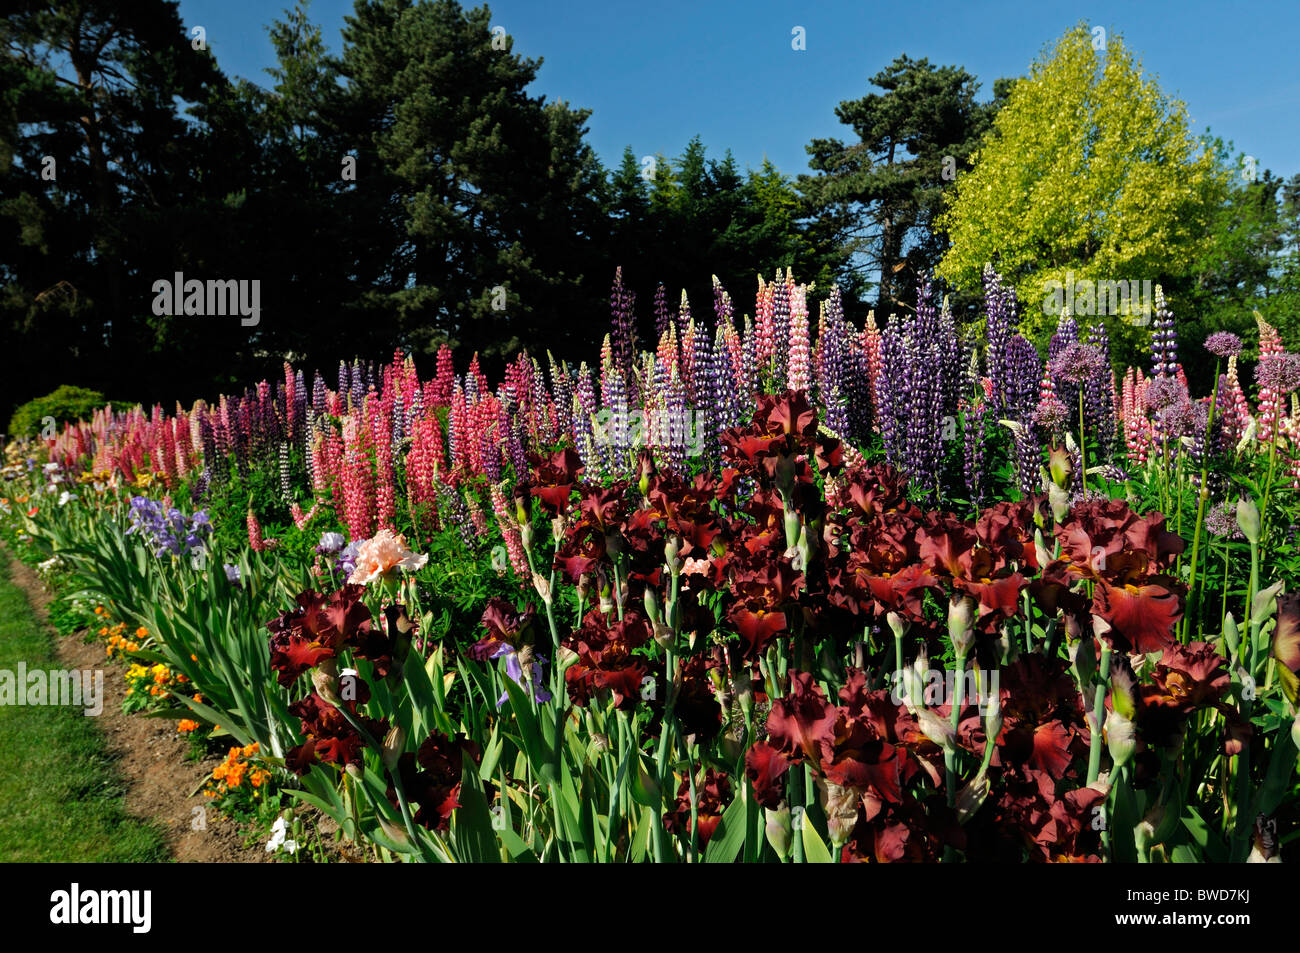 Mixed herbaceous perennial flower bed border garden multi multiple mixed herbaceous perennial flower bed border garden multi multiple color colors summer colorful colourful lupin bearded iris izmirmasajfo Gallery